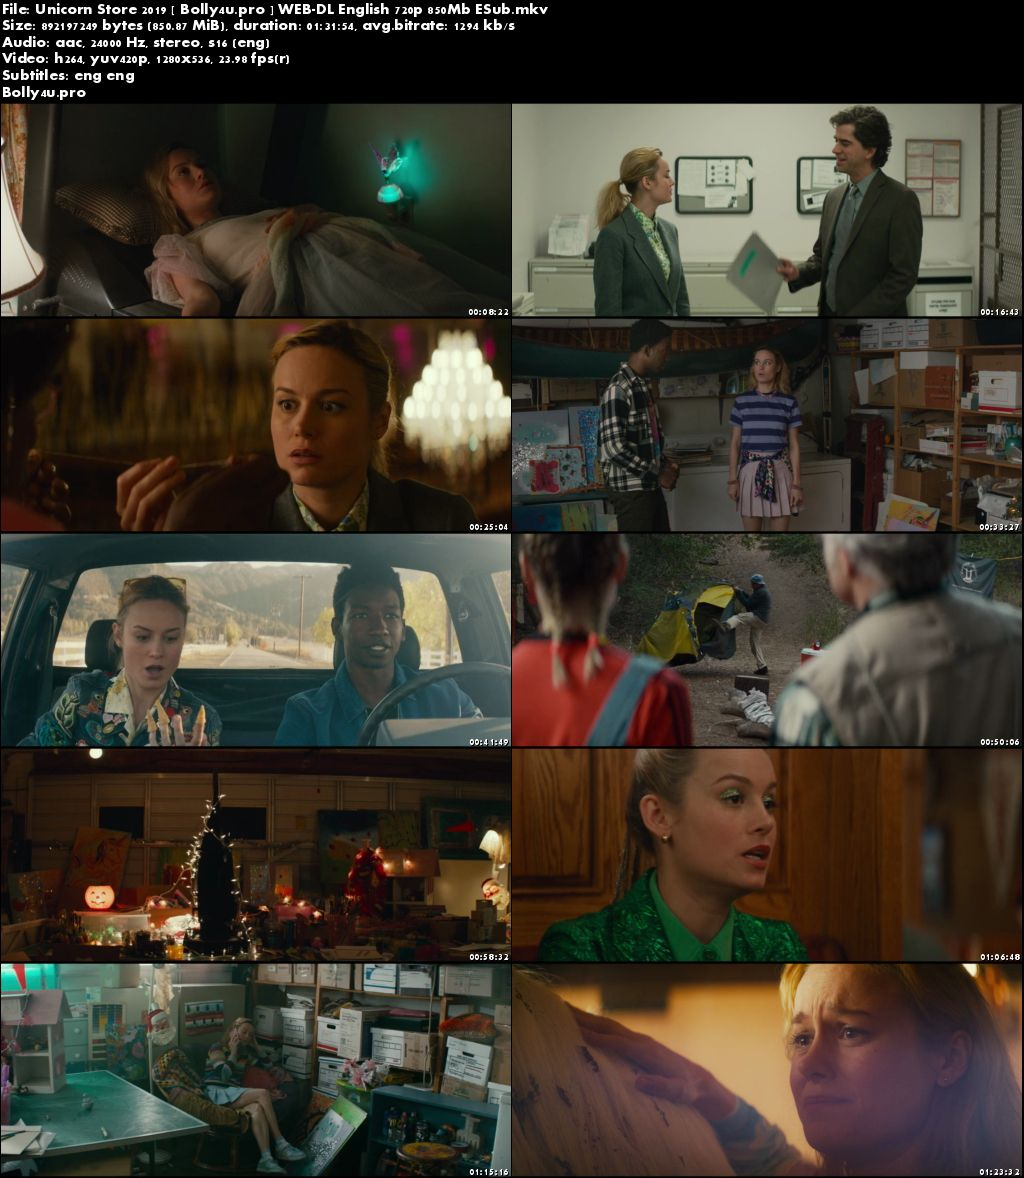 Unicorn Store 2019 WEB-DL 850MB English 720p ESub Download